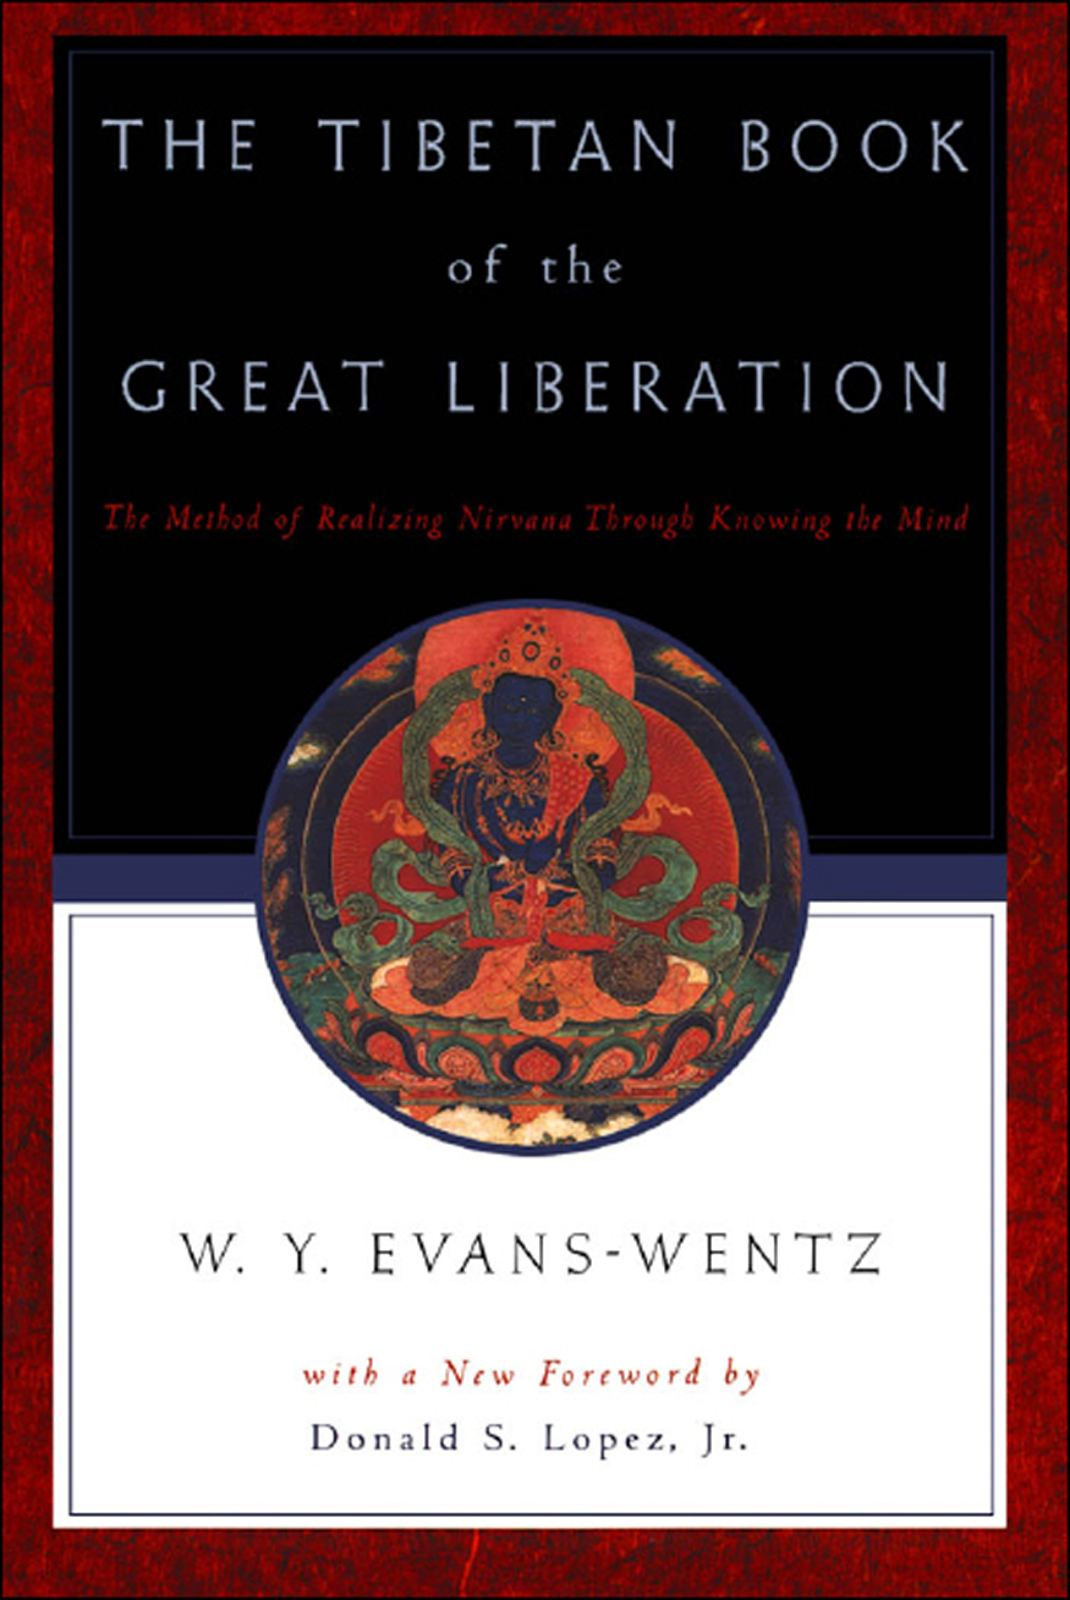 The Tibetan Book of the Great Liberation : Or the Method of Realizing Nirvana through Knowing the Mind